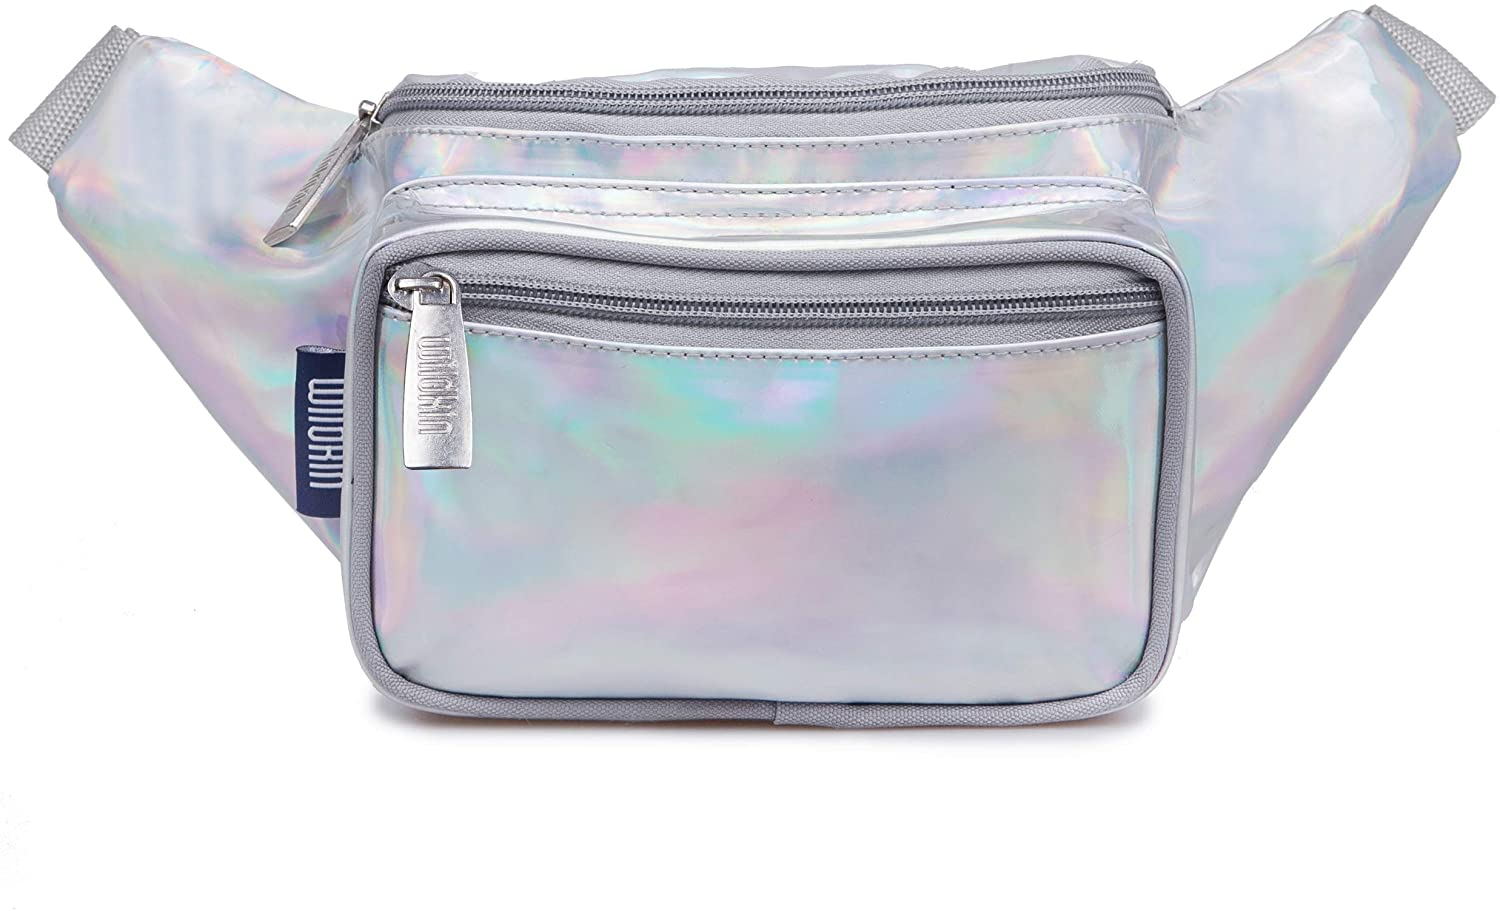 Wildkin Fanny Pack for Girls and Adults, Multifunctional and Spacious with Adjustable Belt, Perfect Size for Concert, Festival and Parades, Measures13.5 x 3 x 6 Inches, BPA-Free (Holographic)